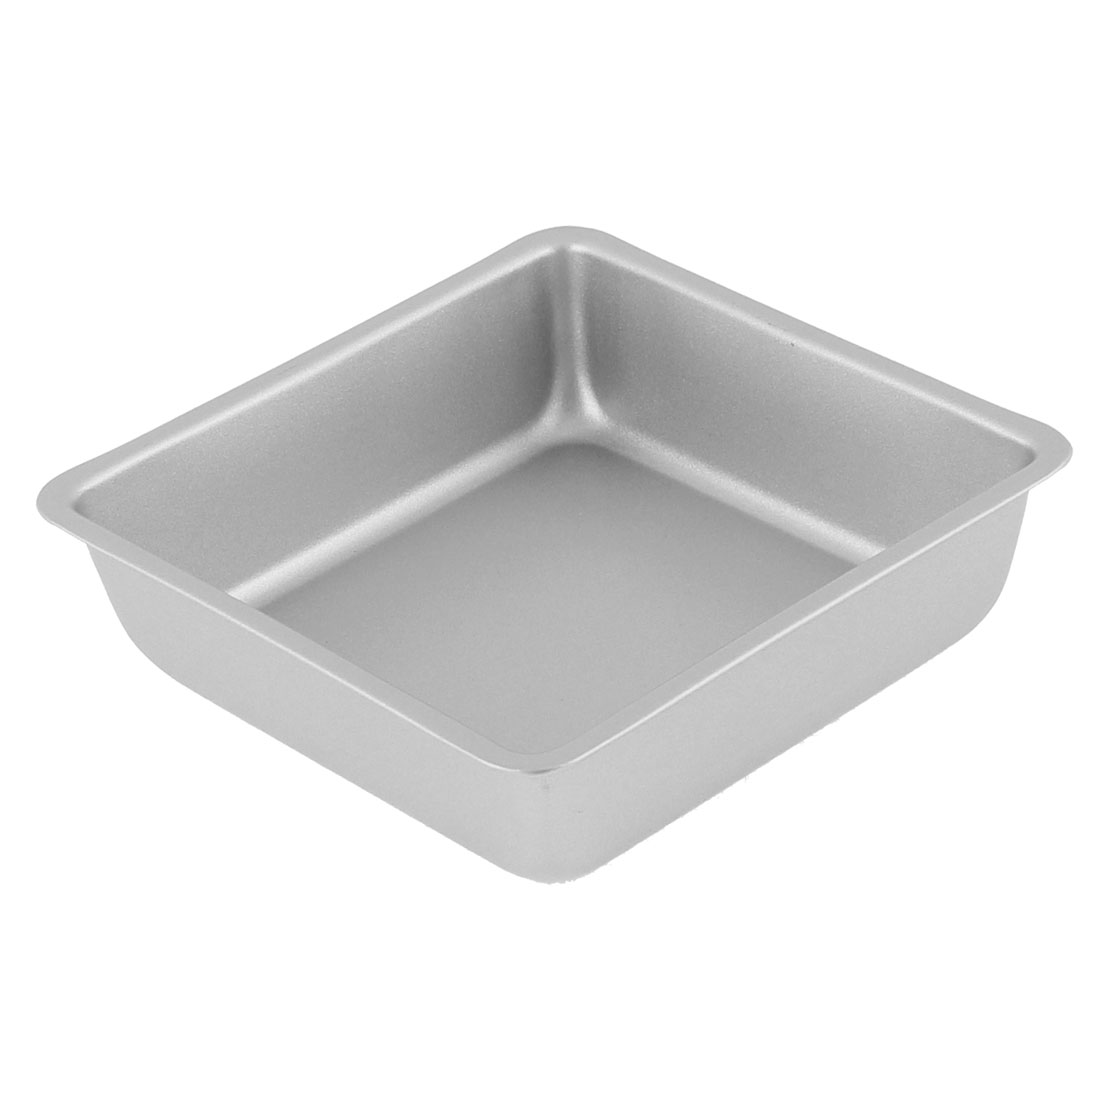 Bakeware Square Shaped Cake Mold Pan 11 x 11 x 3cm